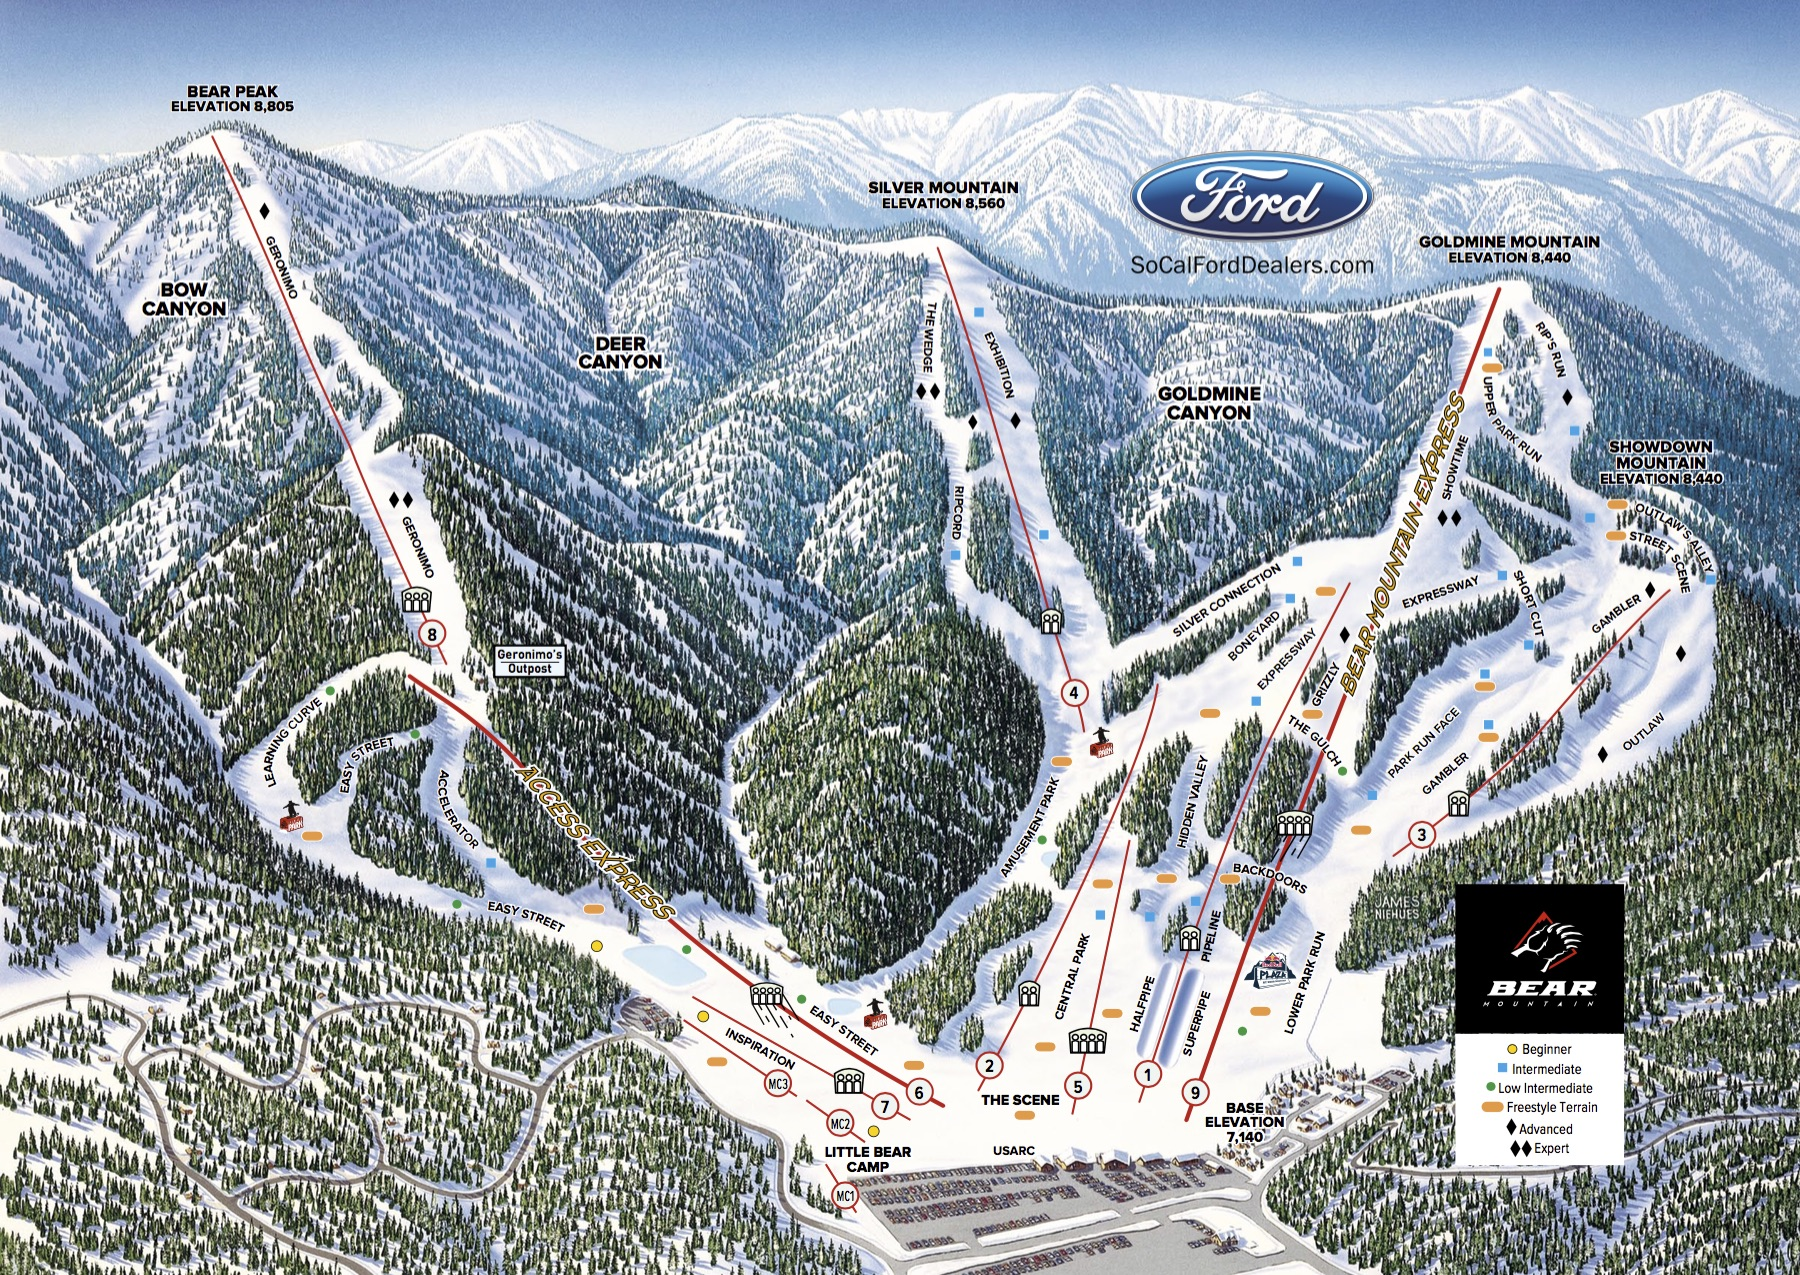 Bear Mountain Map Best of Bear Mountain 2019/20 | Packages & Top Tips   SnowPak